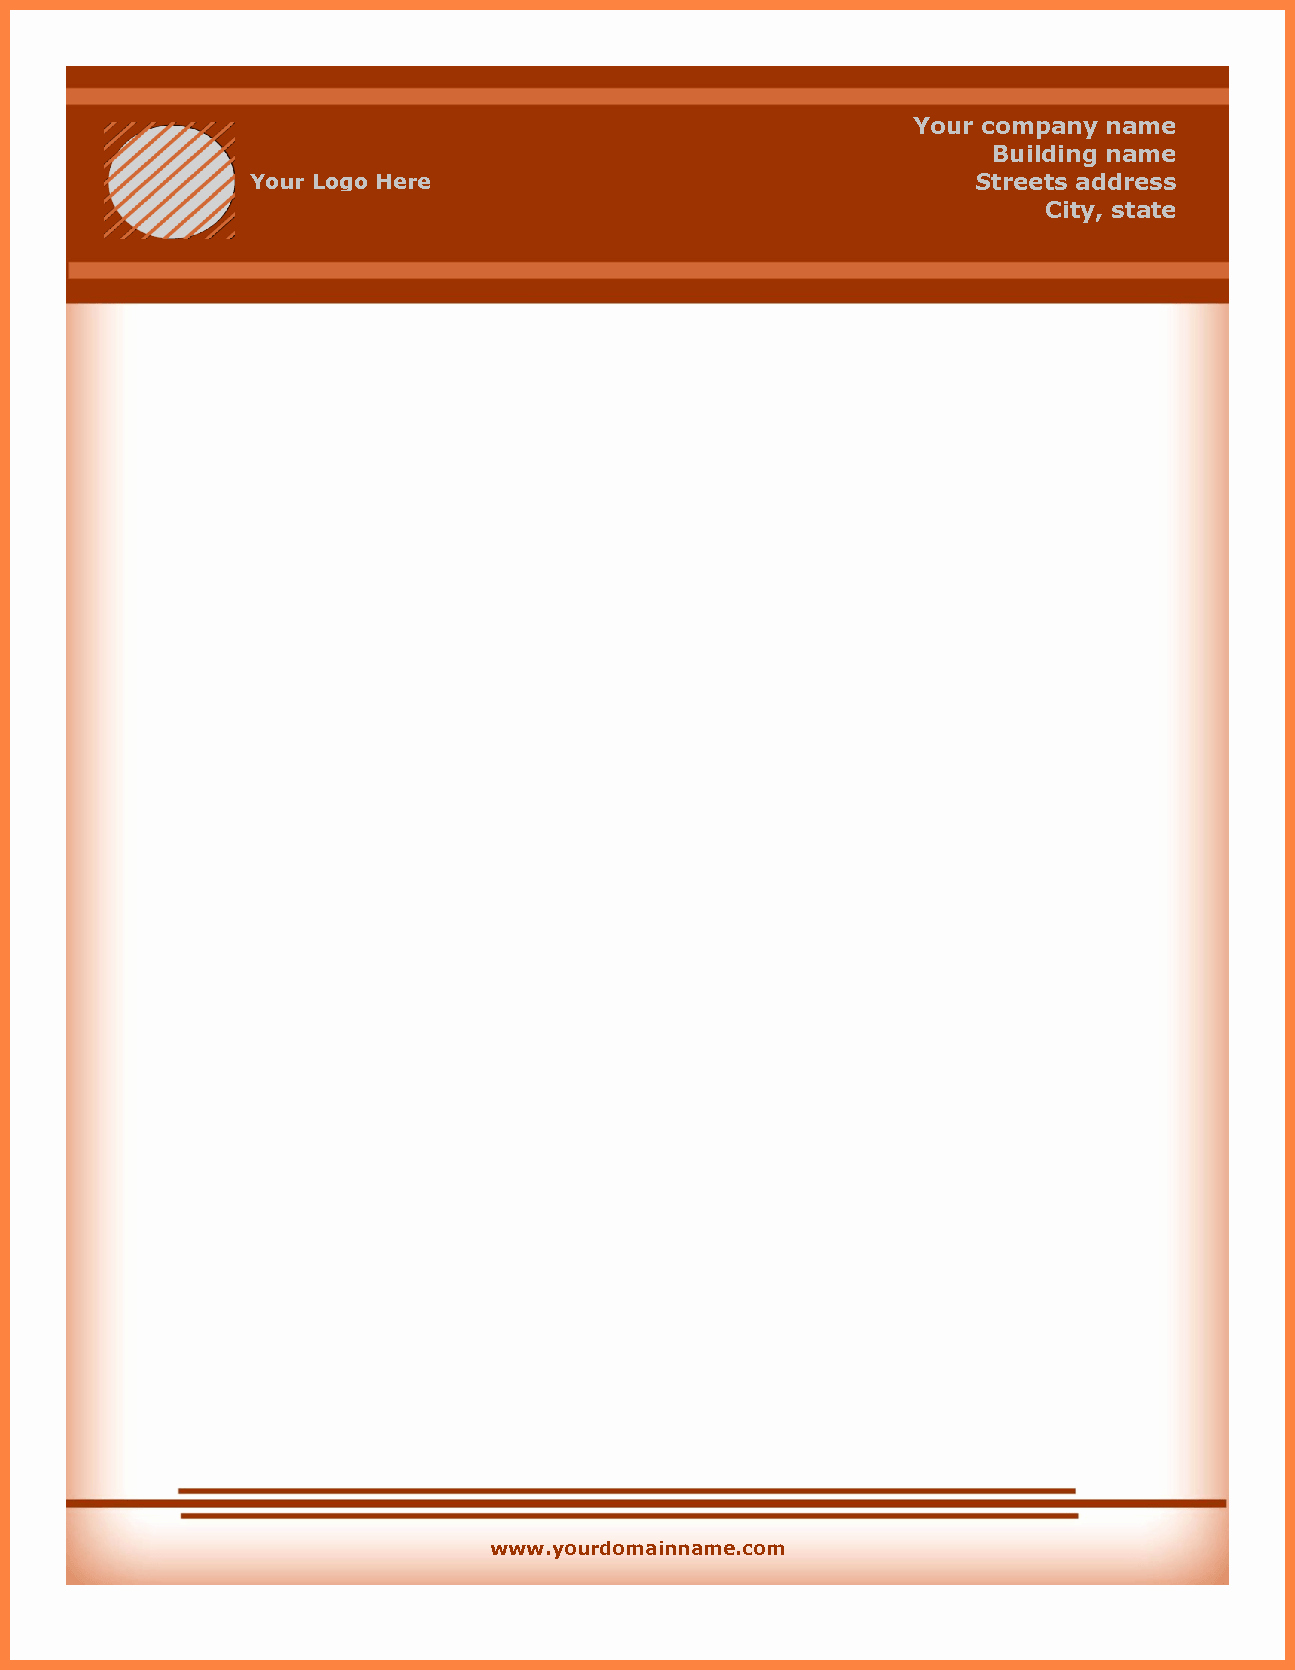 Personal Letterhead Templates Free Download New 5 Letterhead Templates